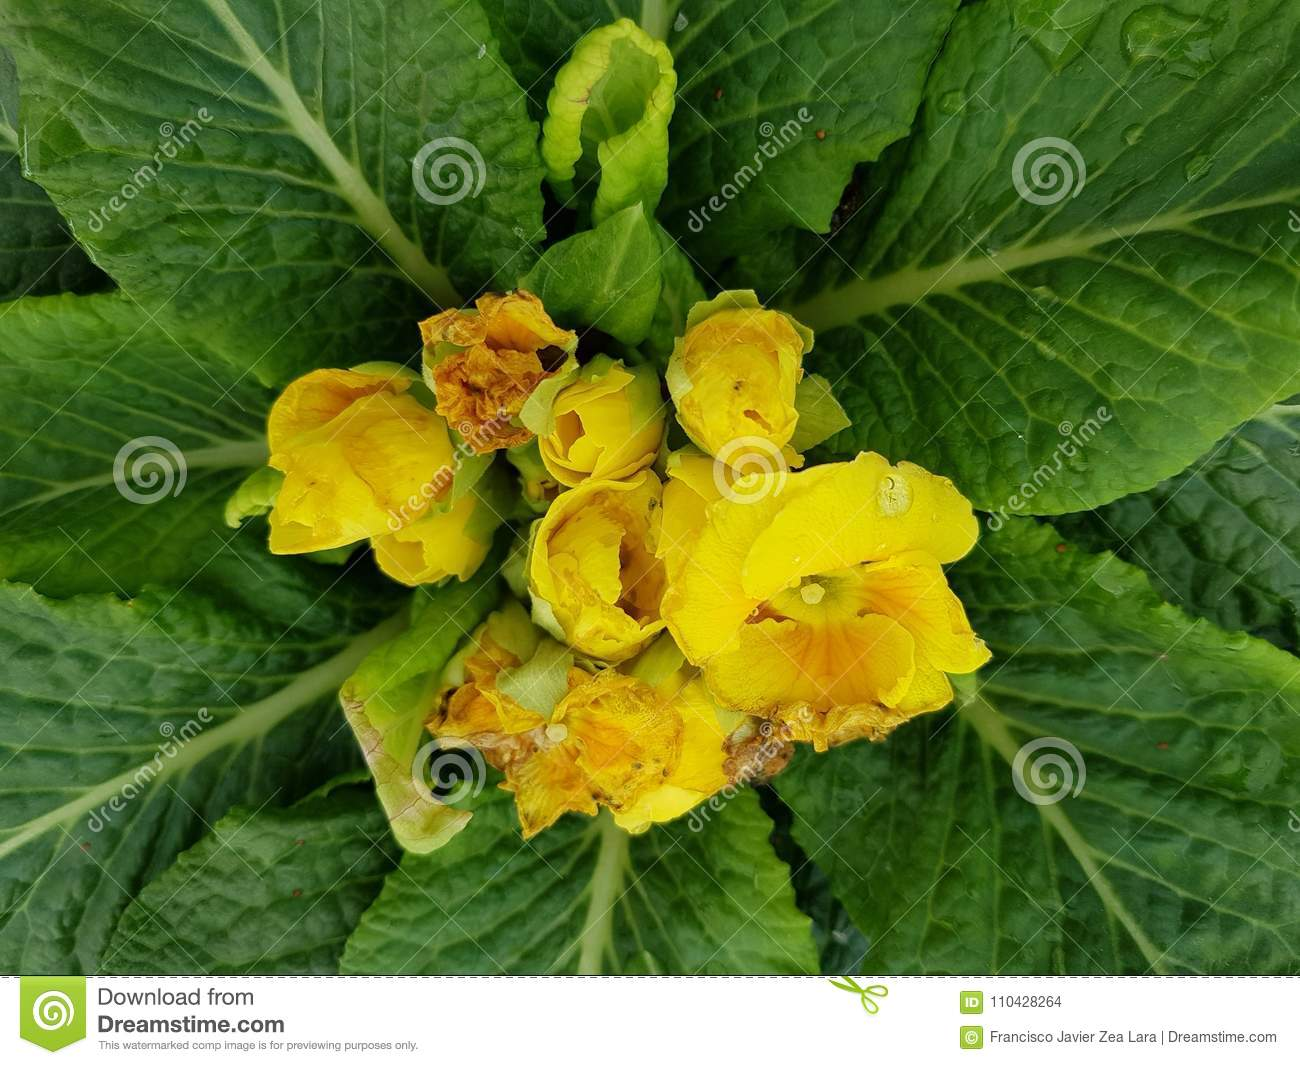 Primula With Small Yellow Flowers In The Center Of The Green Leaves